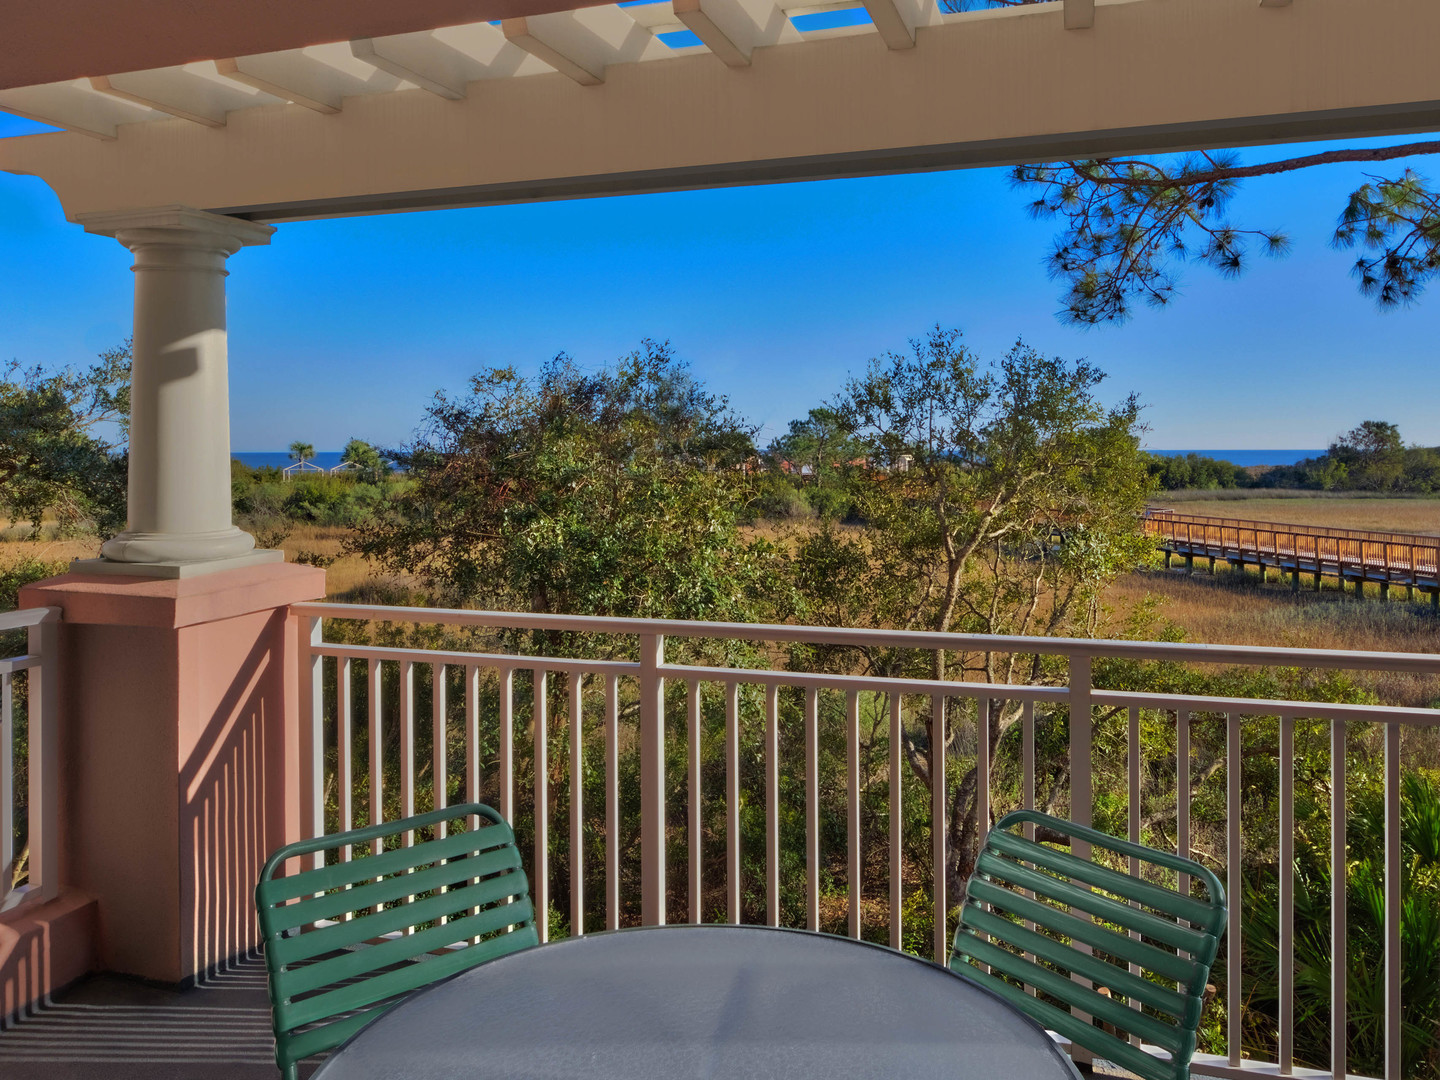 Marriott's SurfWatch<span class='trademark'>®</span> Villa Balcony. Marriott's SurfWatch<span class='trademark'>®</span> is located in Hilton Head Island, South Carolina United States.